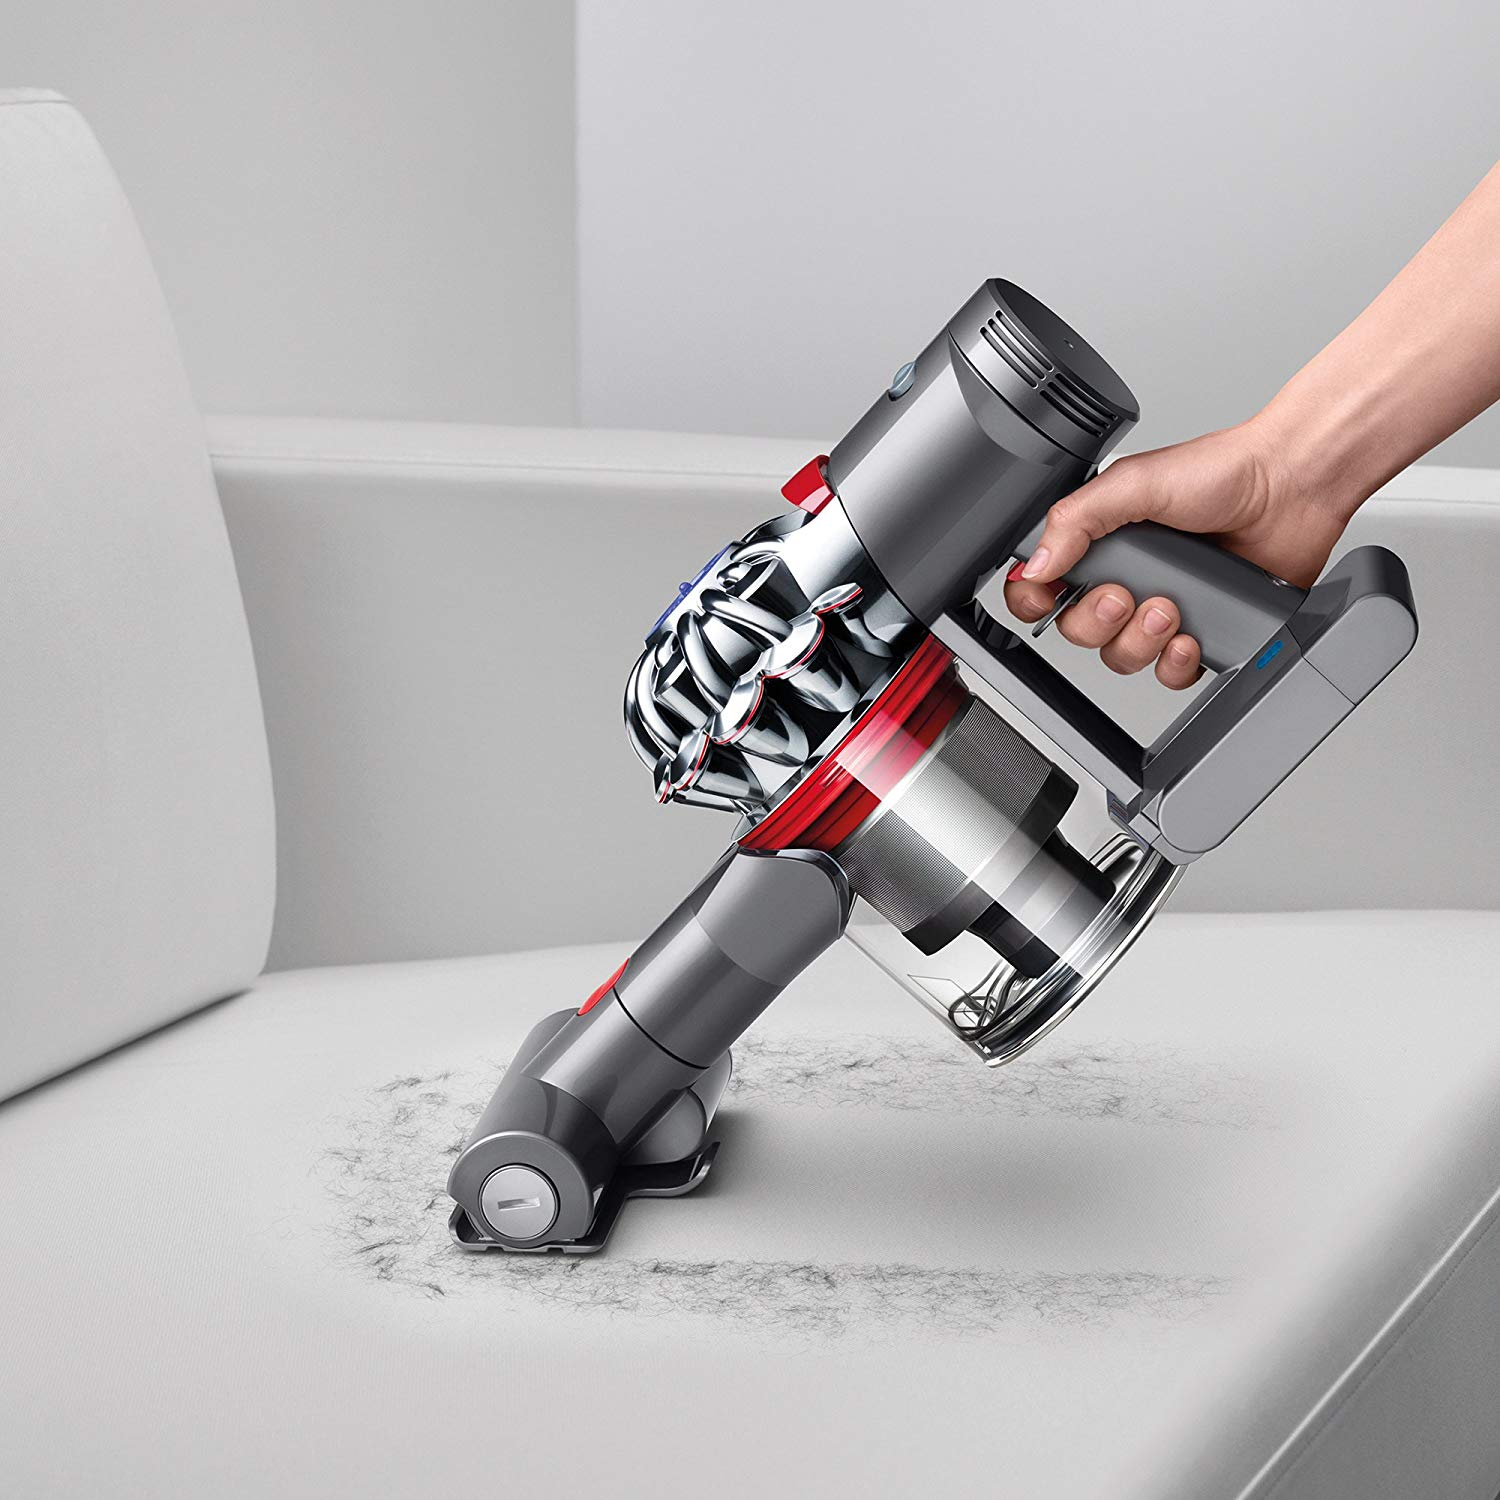 Dyson V7 Trigger Cord-Free Handheld Vacuum Cleaner [ FREE SHIPPING ]